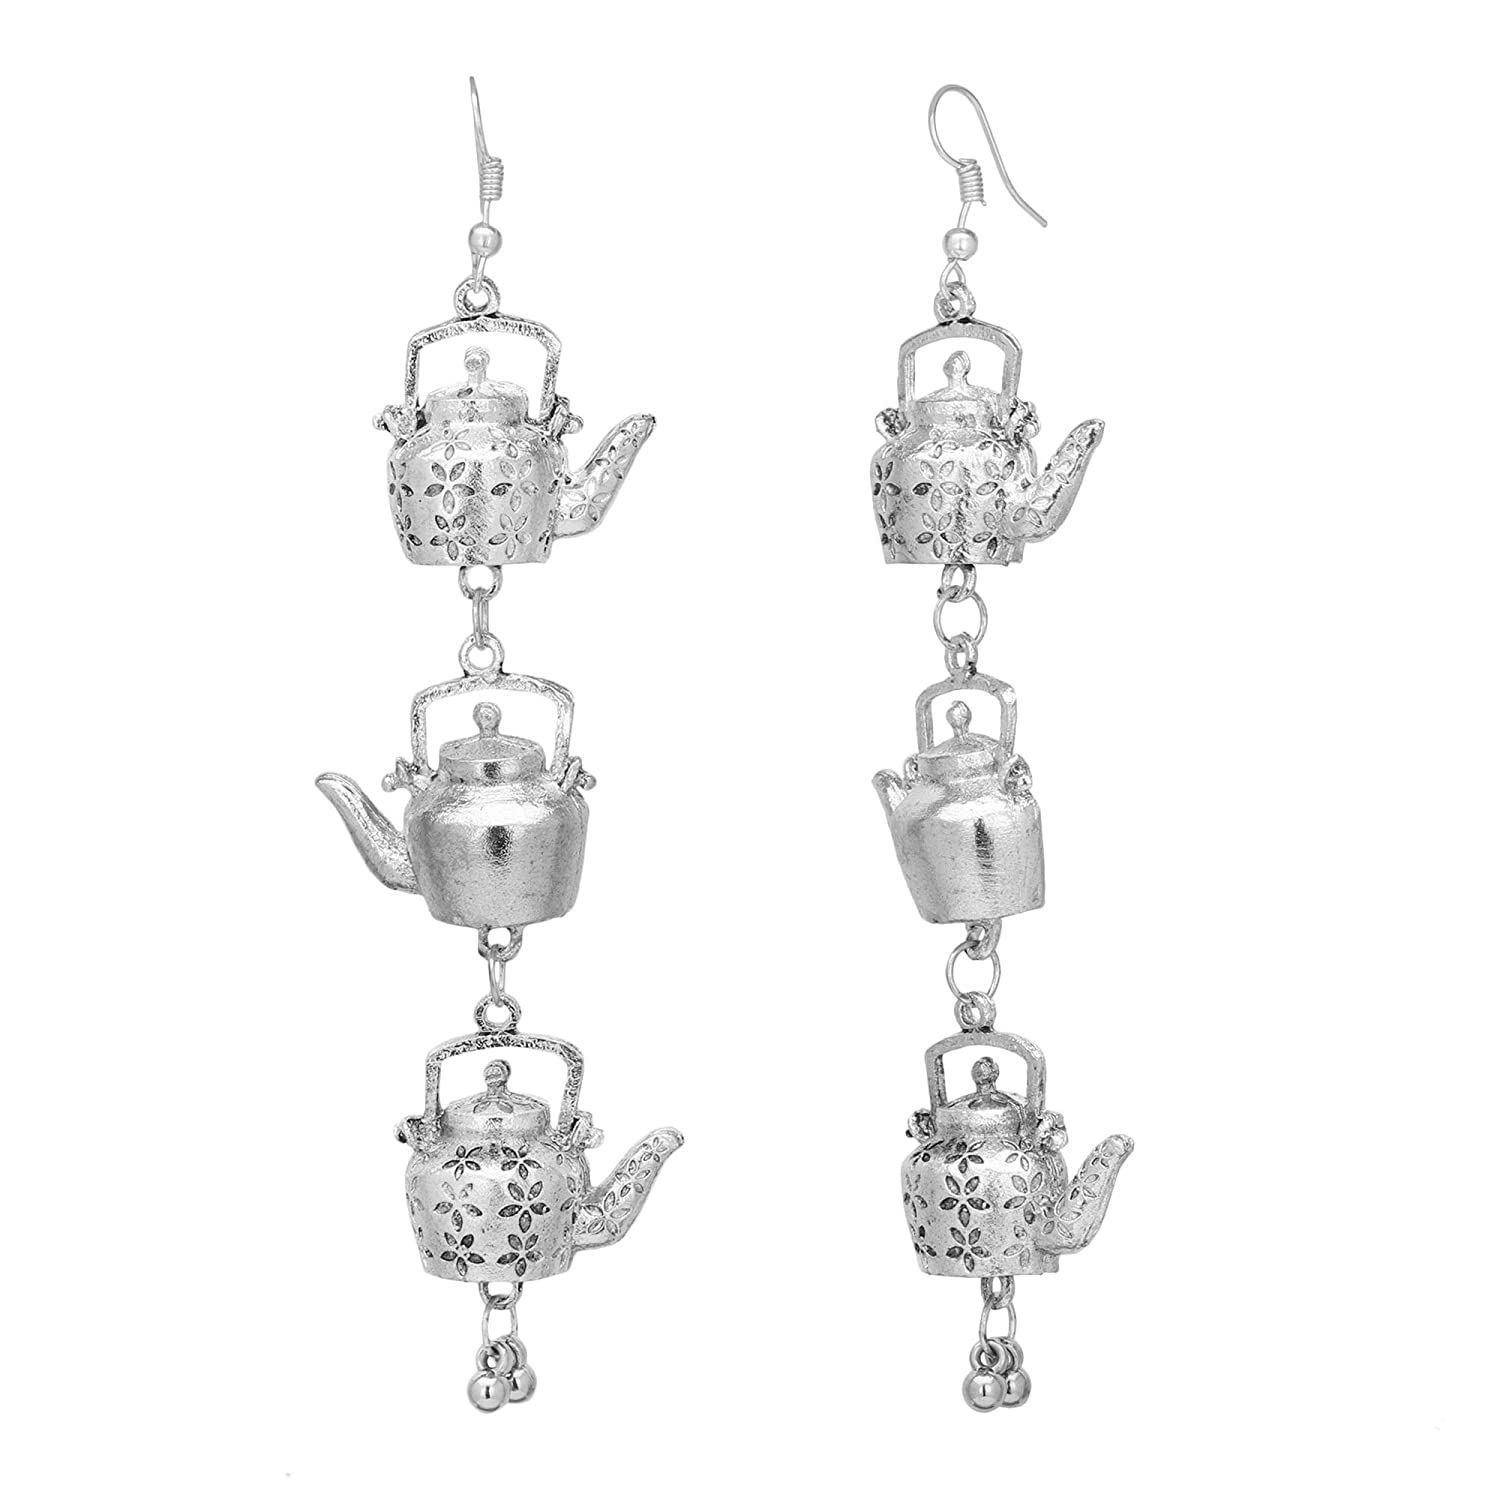 Jwellmart Indian Wedding Bollywood Oxidized Silver Jhumka Kettle Design Jewelry Earrings For Women and Girls